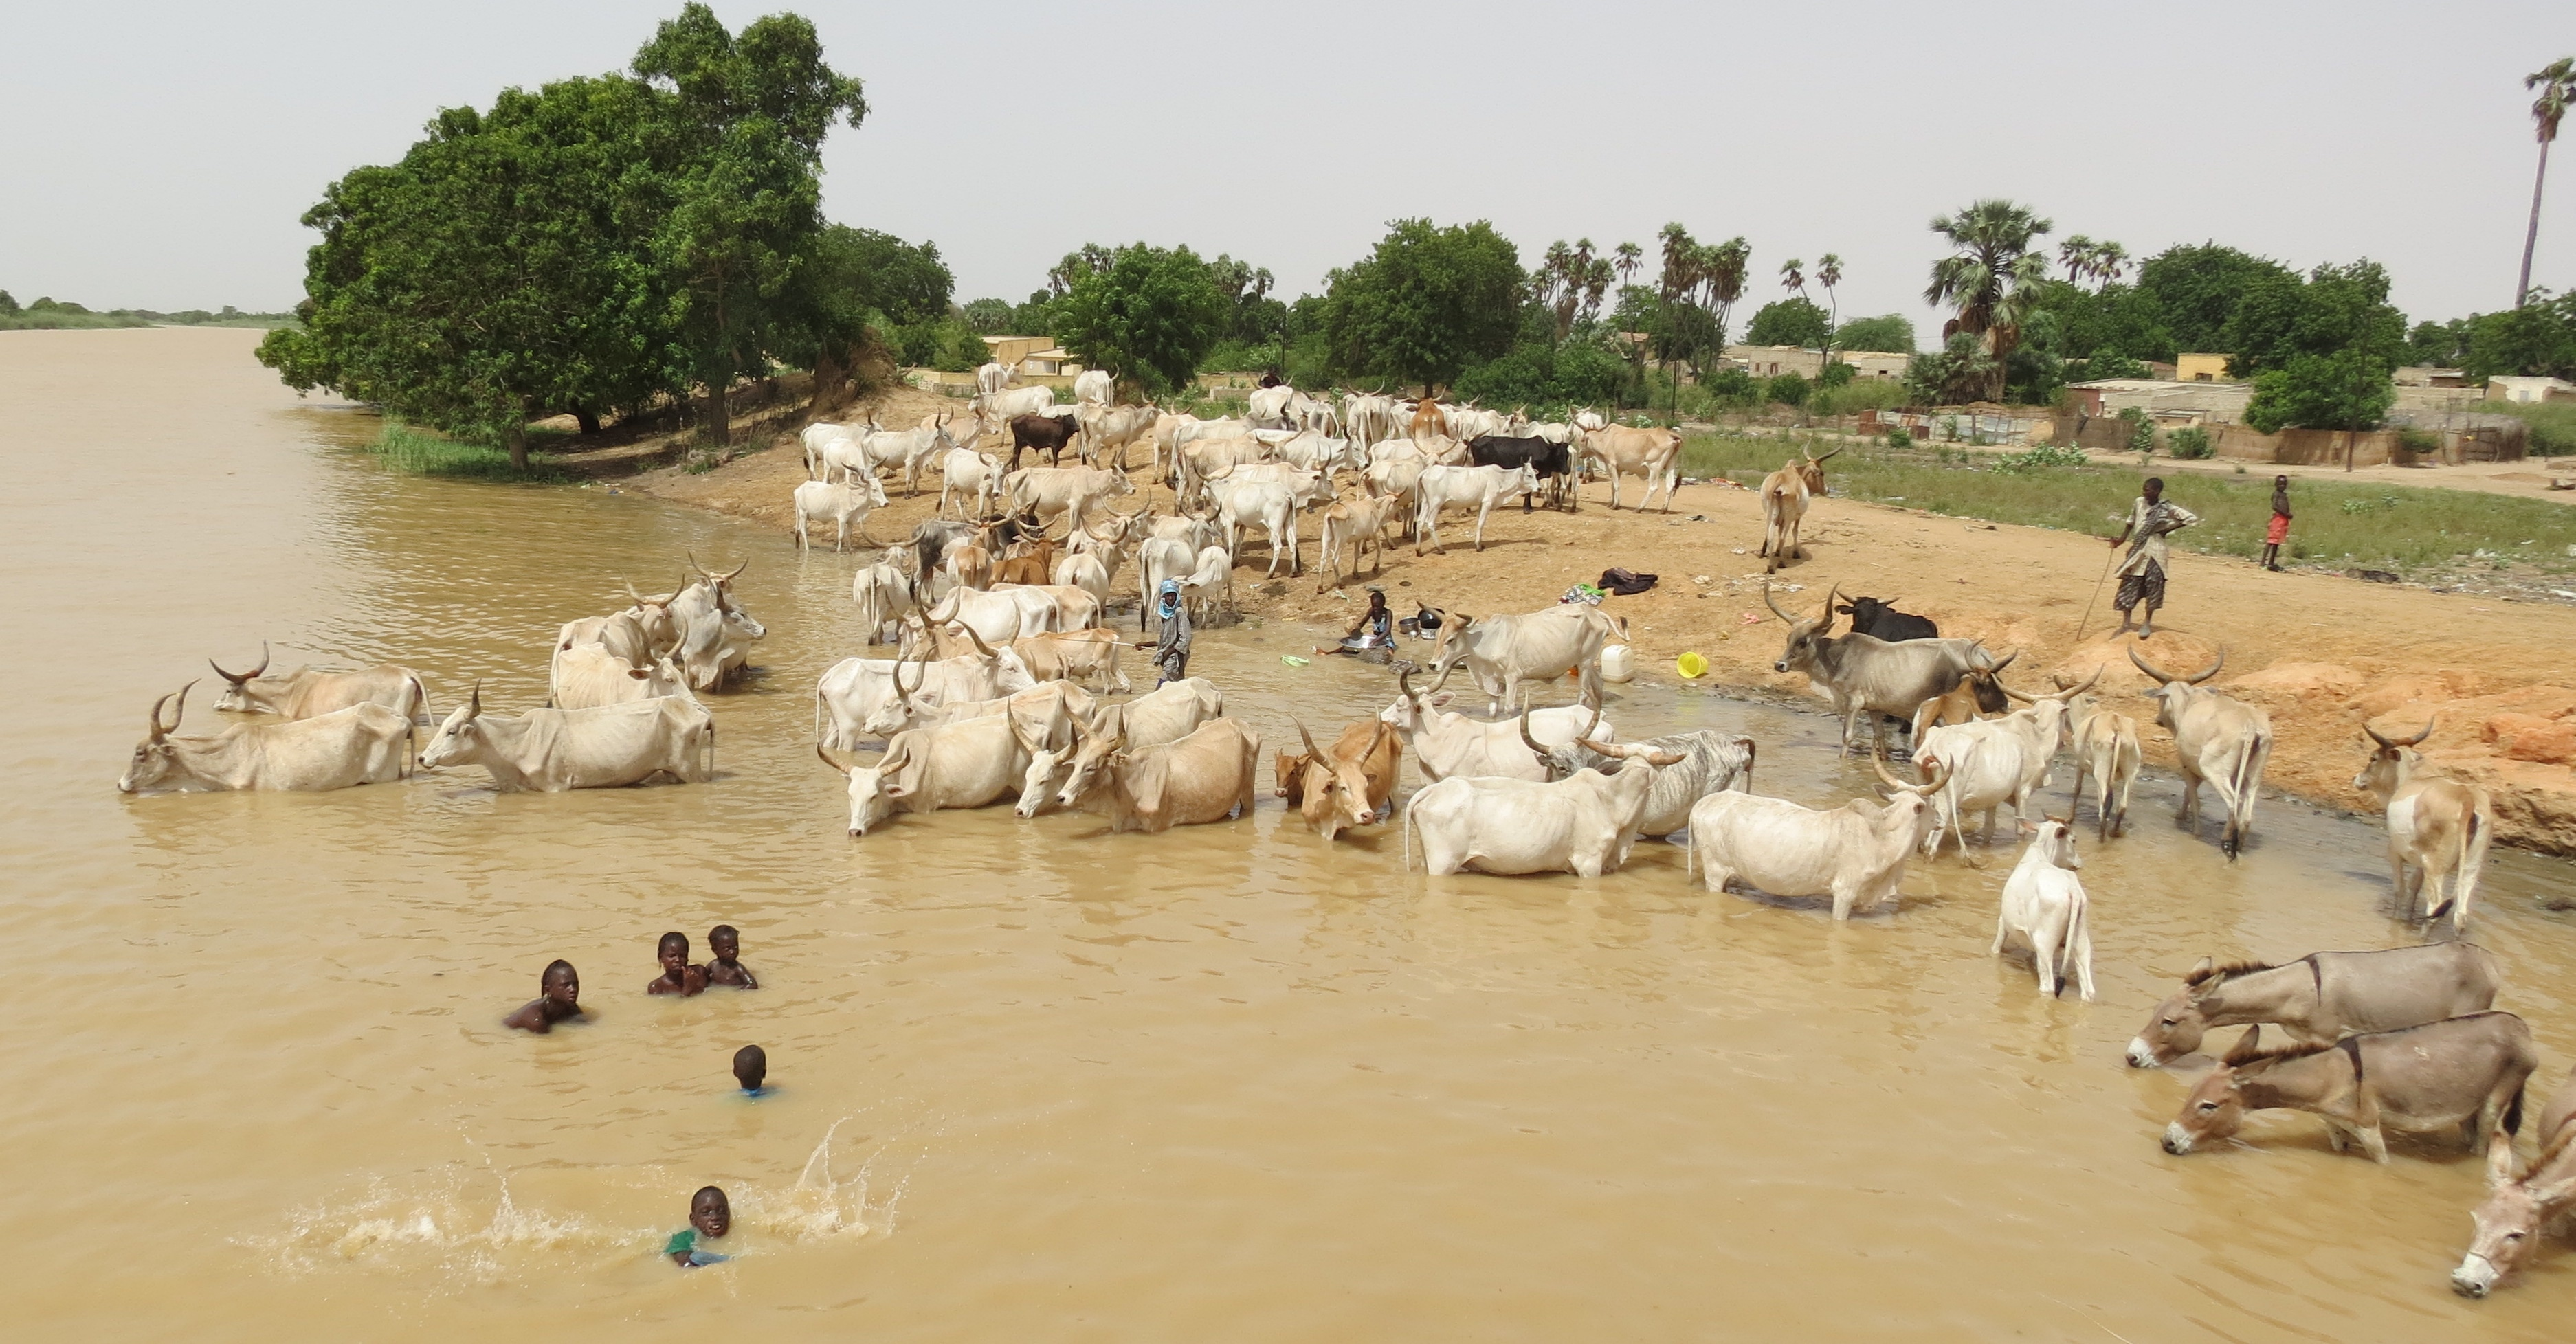 Is schistosomiasis a zoonotic disease